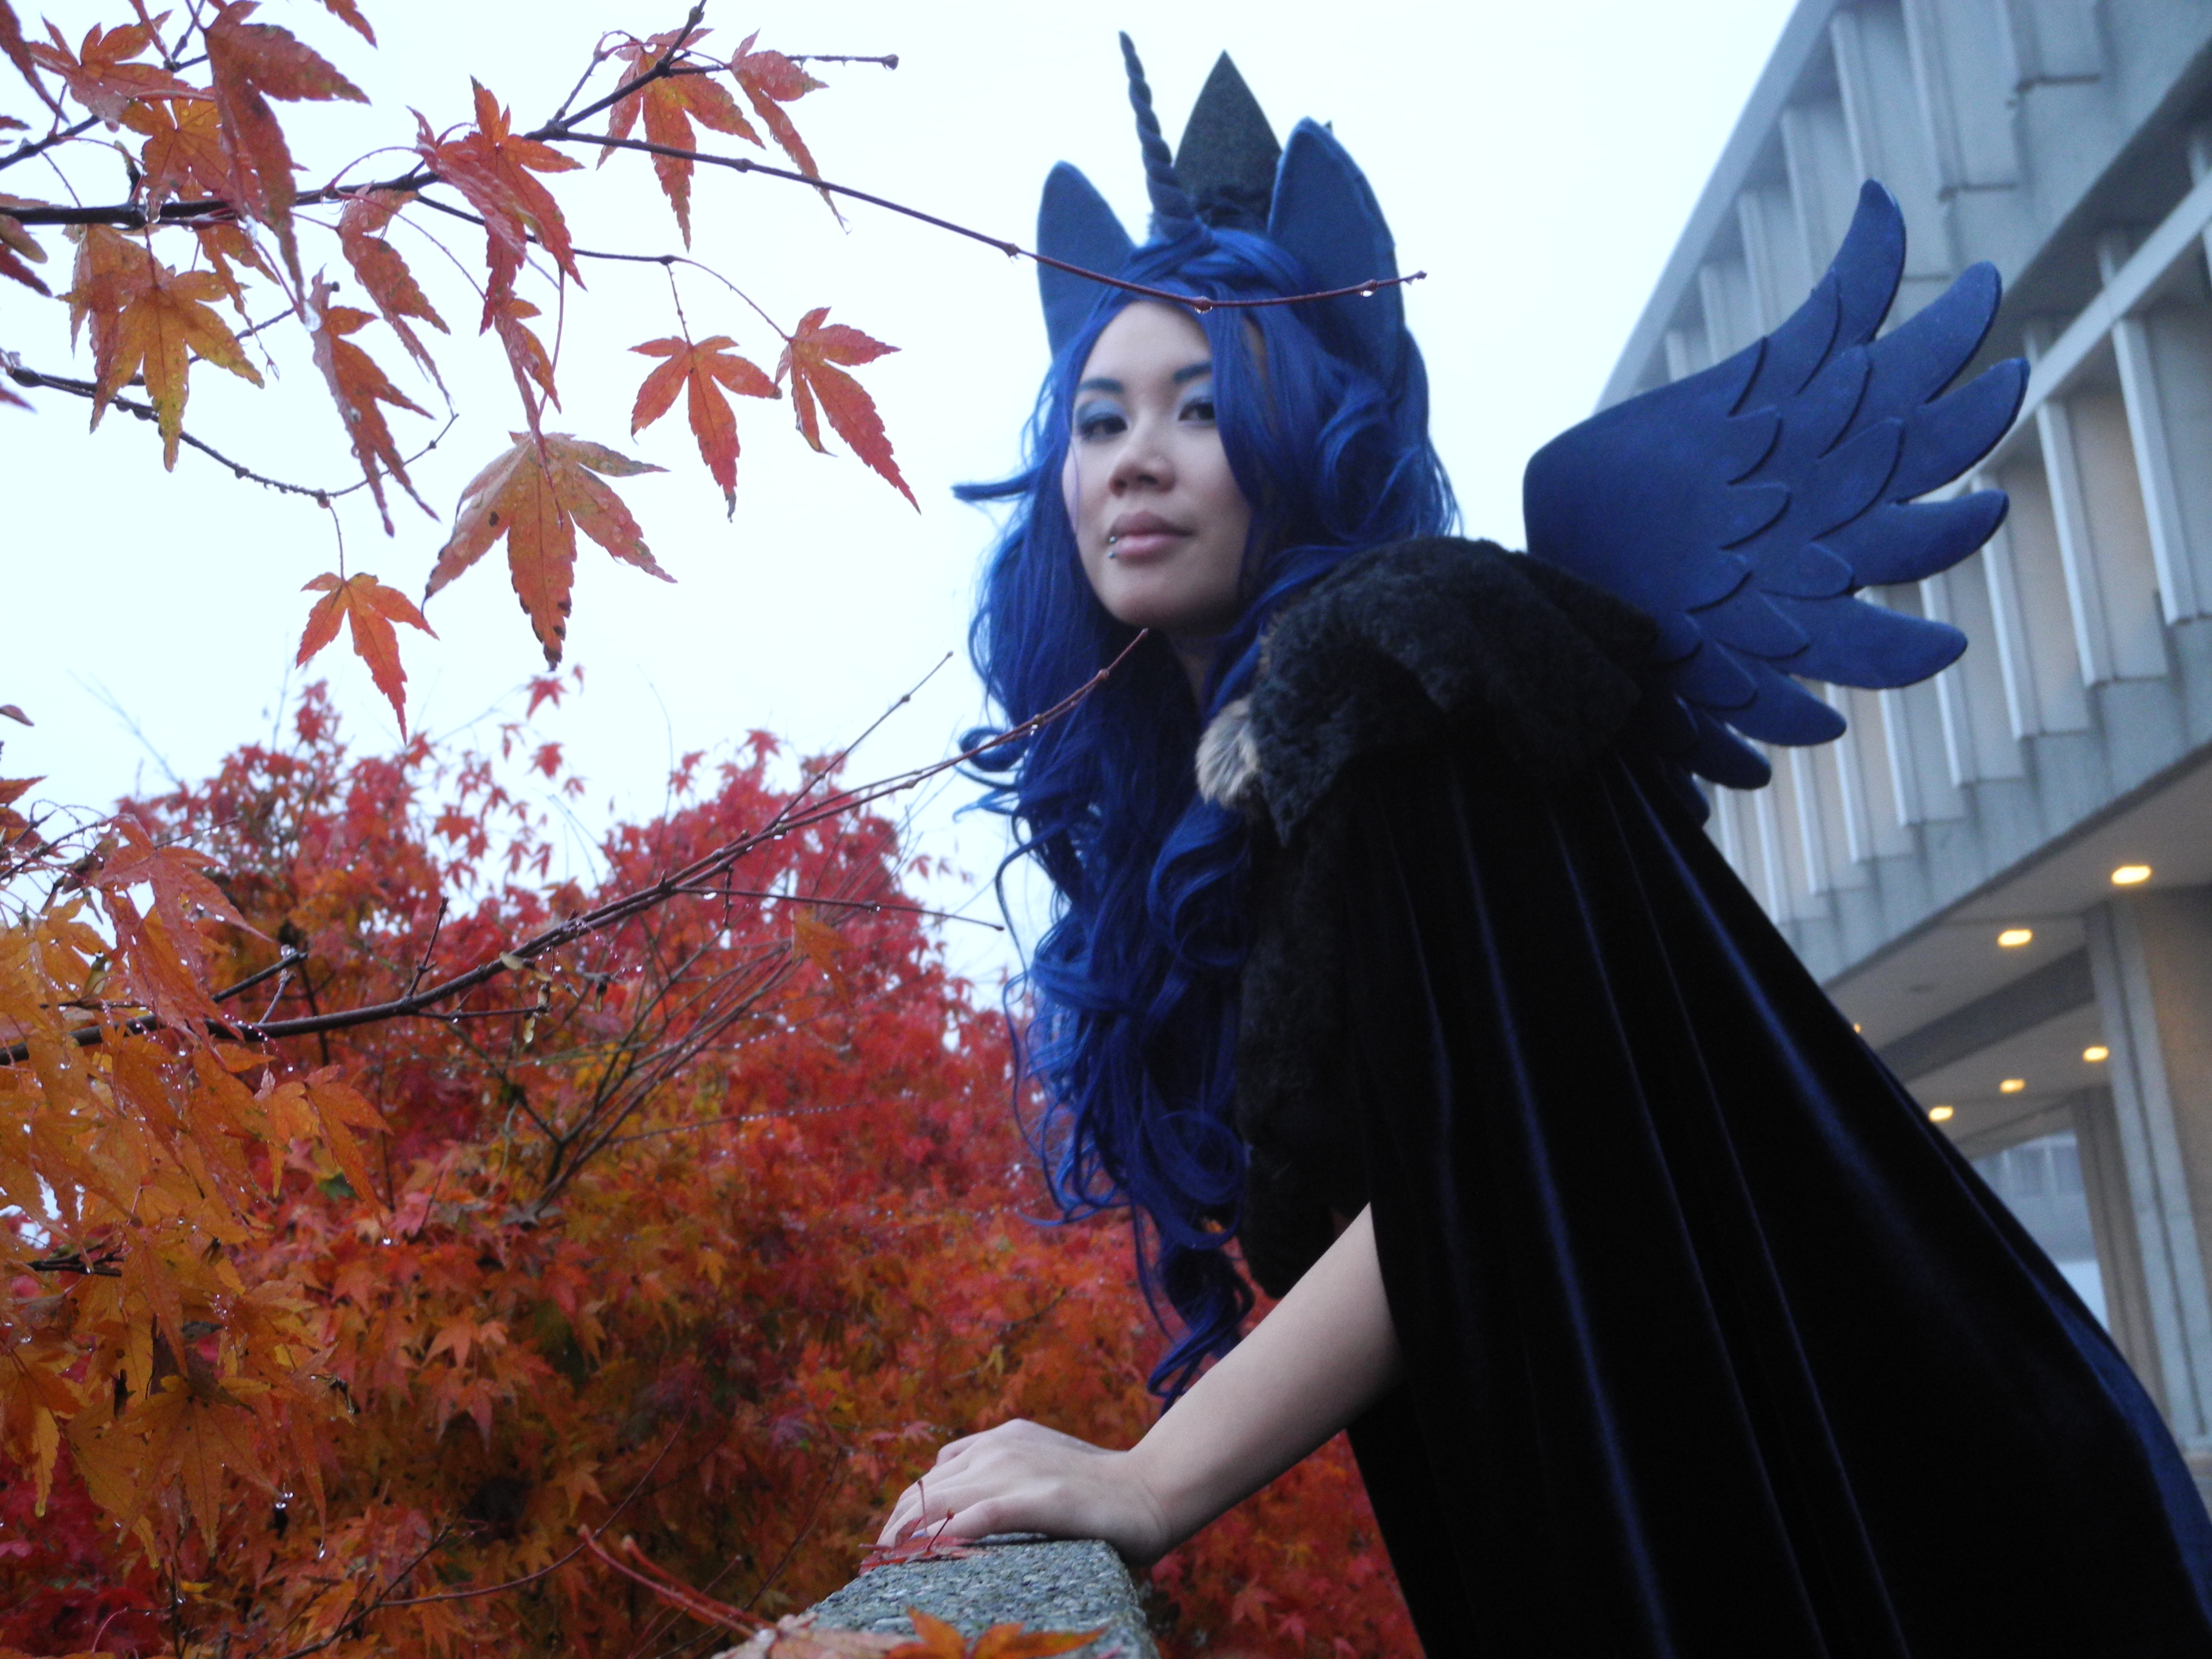 Princess Luna Cosplay Princess Luna Loyal Subjects By Highwindd Dnhpo